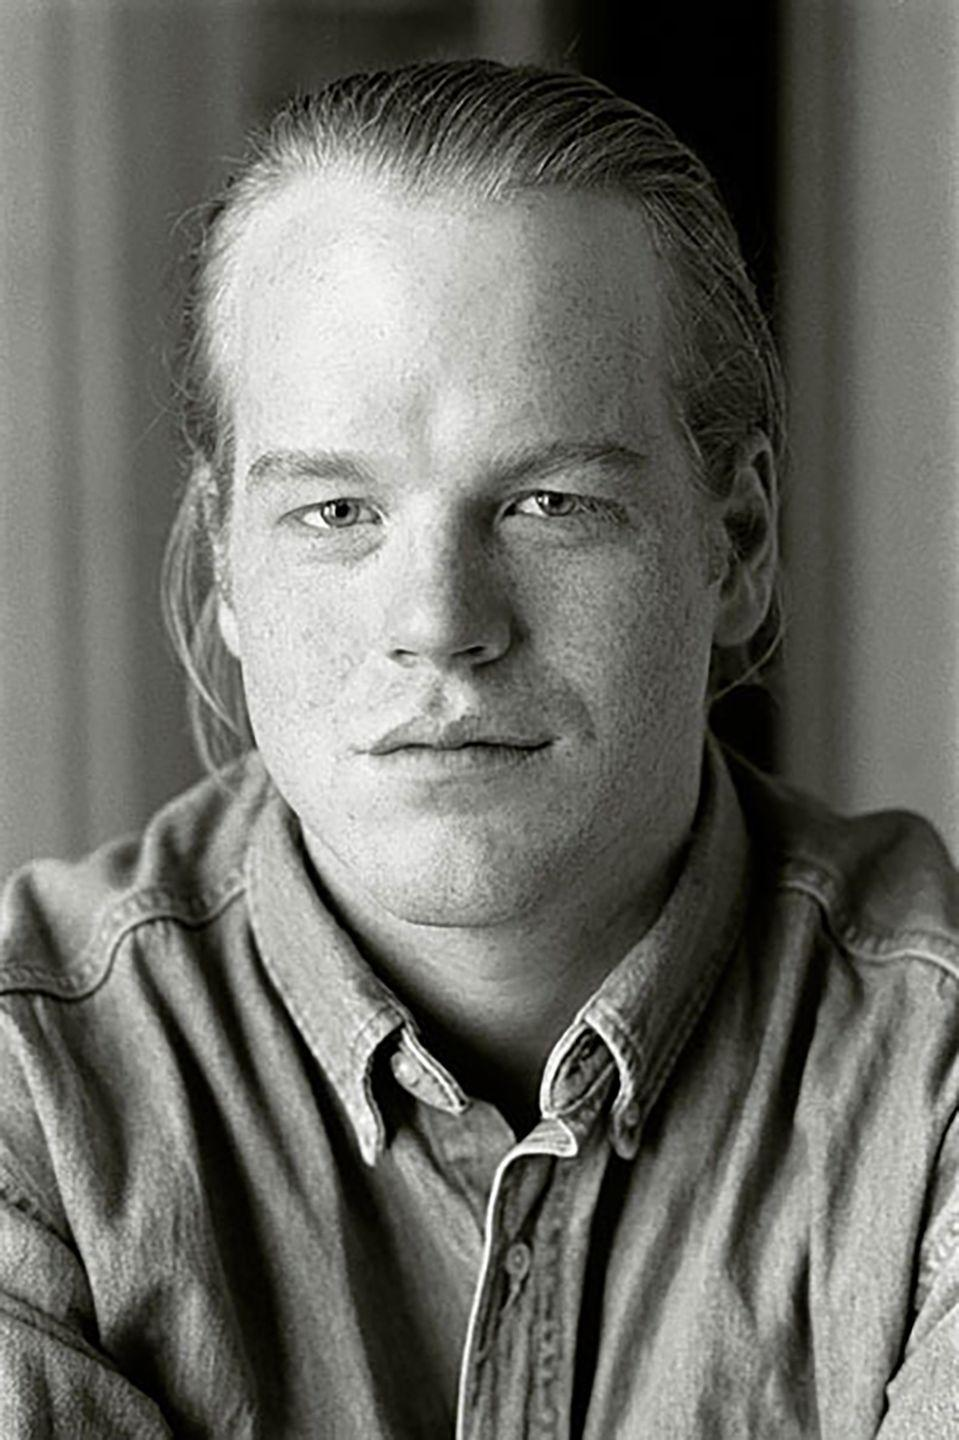 <p>A graduate from the Tisch School of the Arts, Philip Seymour Hoffman made his first film debut in <em>Triple Bogey on a Par Five Hole </em>in 1991. The turning point in his career was when he starred in <em>Boogie Nights </em>in 1997.</p>